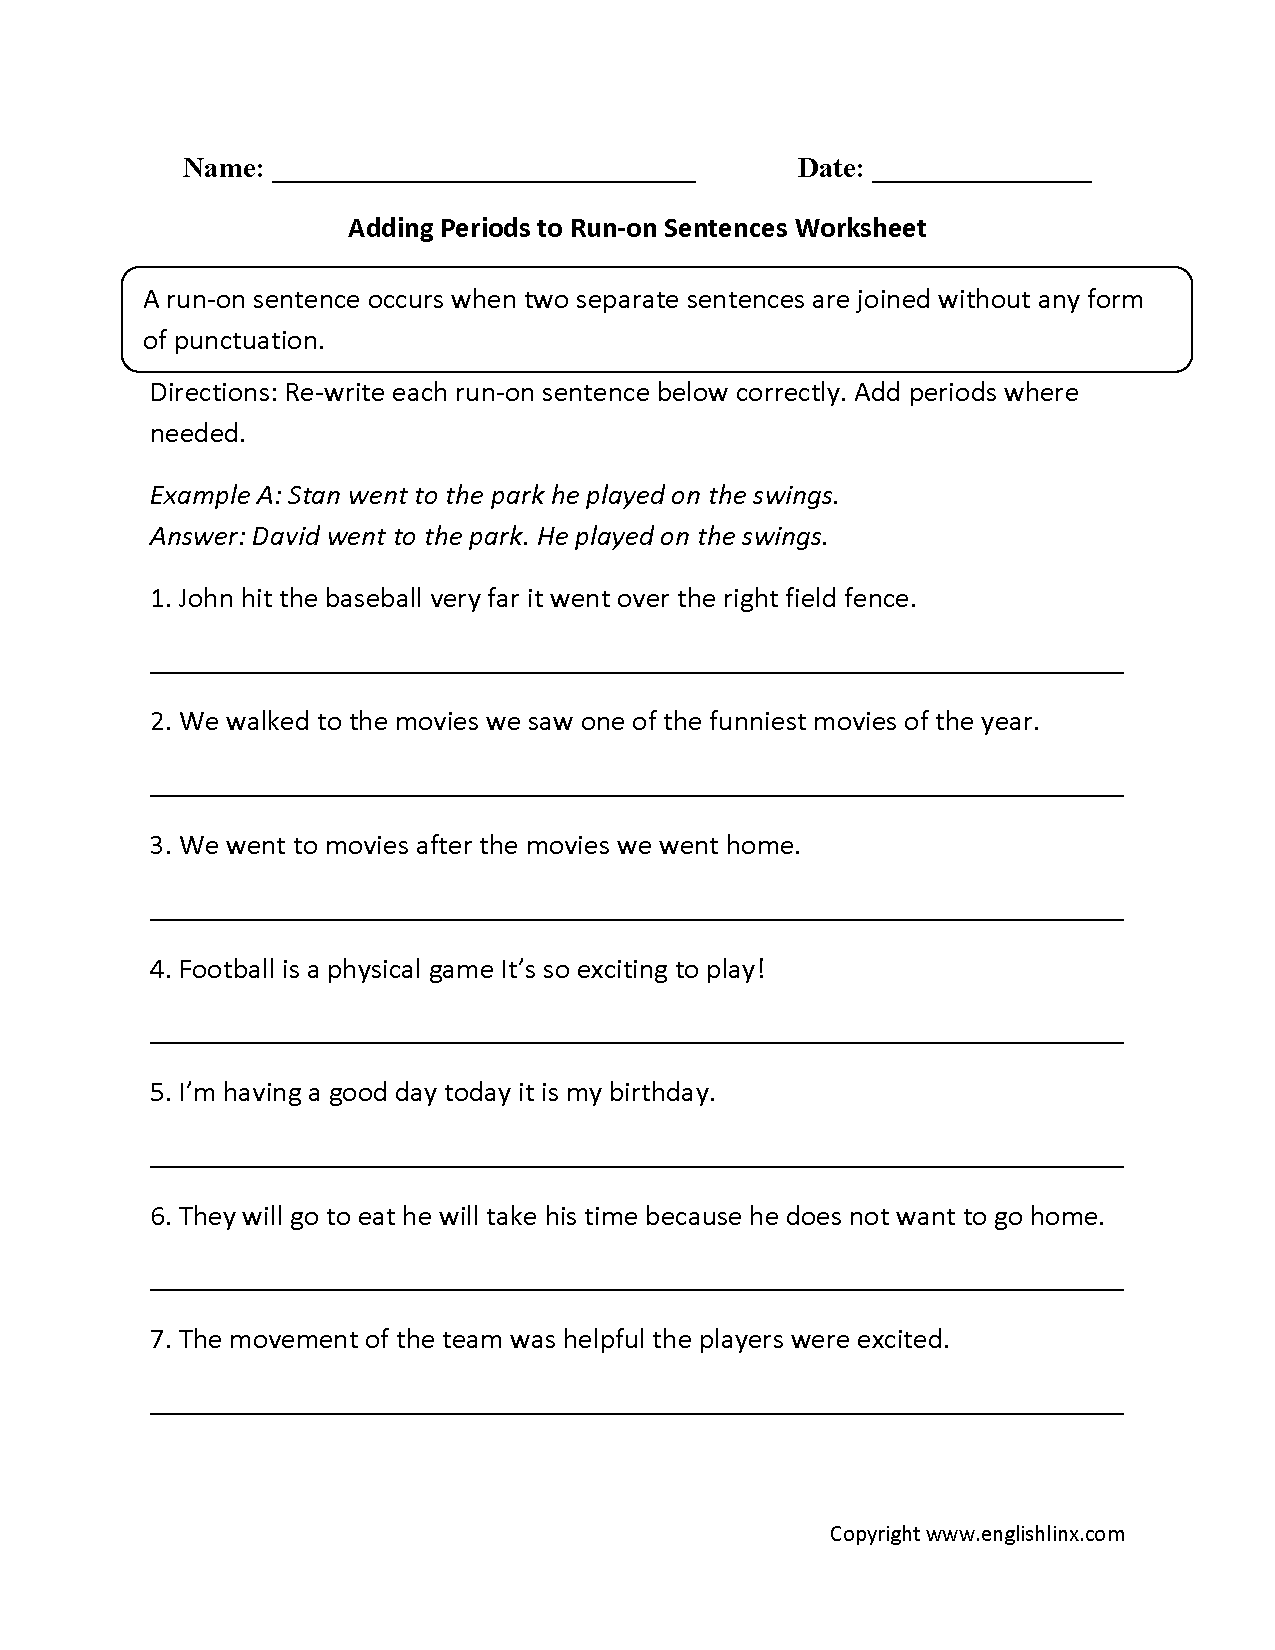 Worksheets Correct Sentences Worksheet sentences worksheets run on worksheets